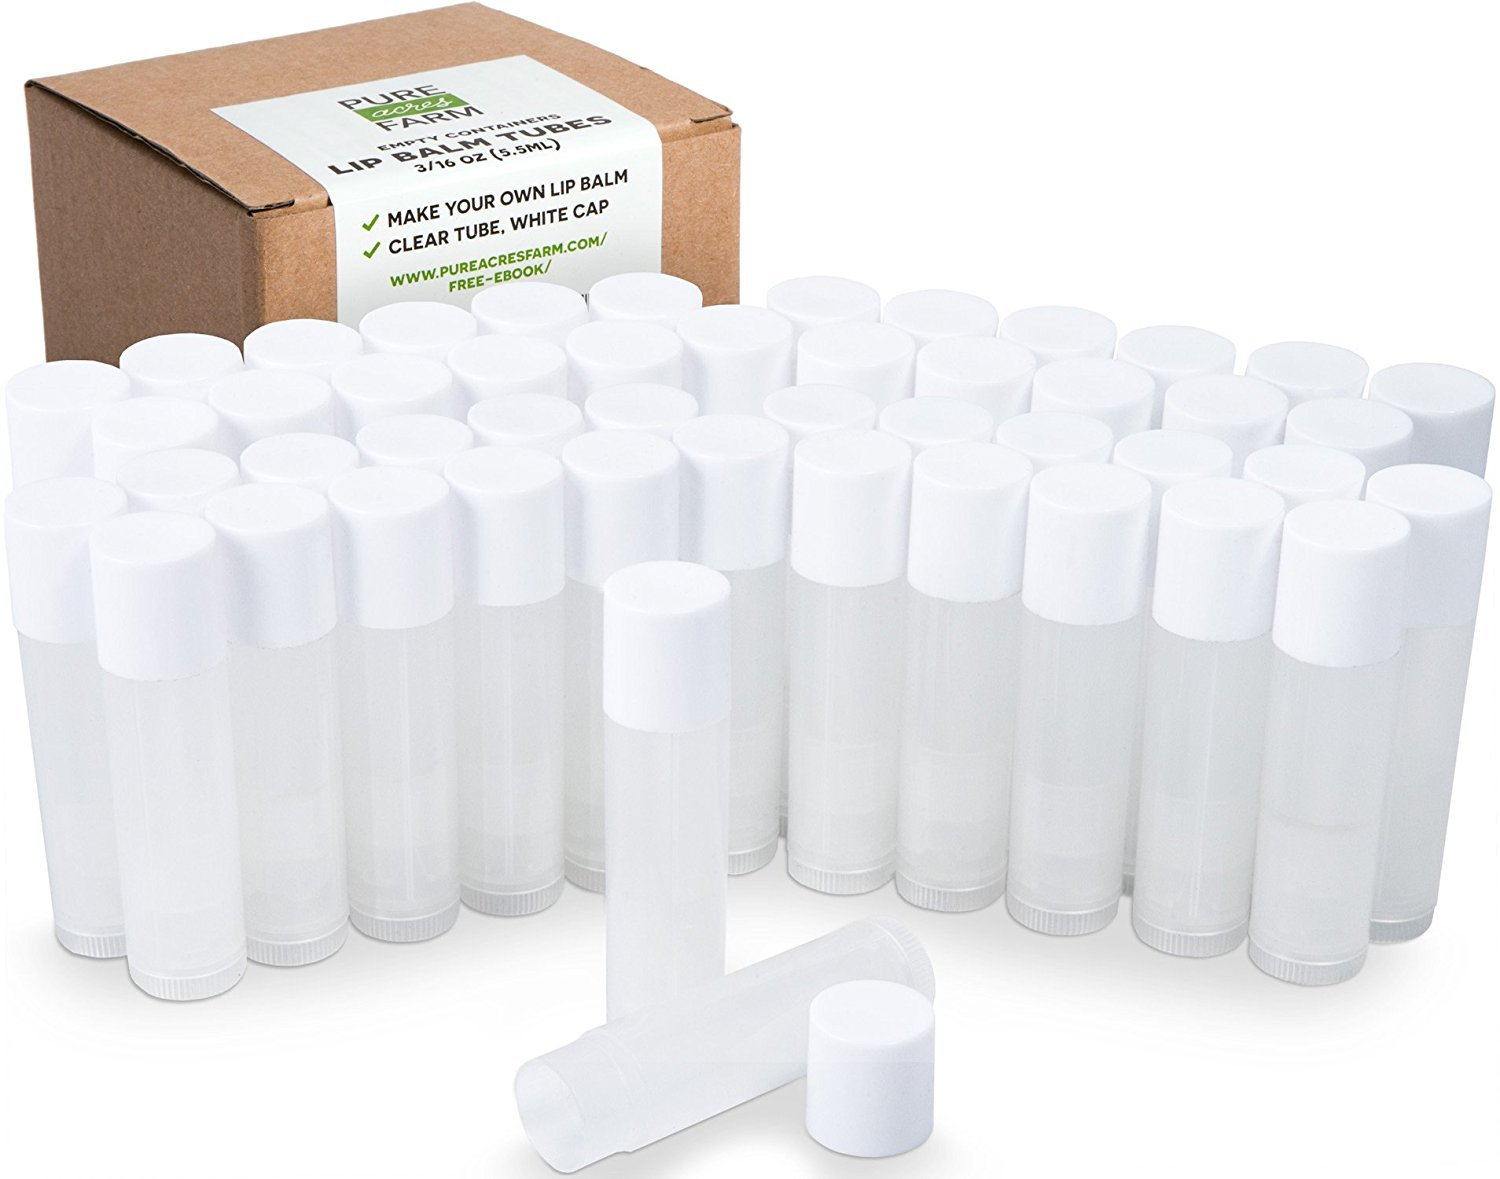 25 Lip Balm Tubes with Caps (Natural/Clear) NEW, Ship from America InstaNatural Vitamin C Facial Cleanser - Anti Aging, Breakout & Wrinkle Reducing Face Wash for Clear & Reduced Pores - Organic & Natural Ingredients - Oily, Dry & Sensitive Skin - 6.7 OZ